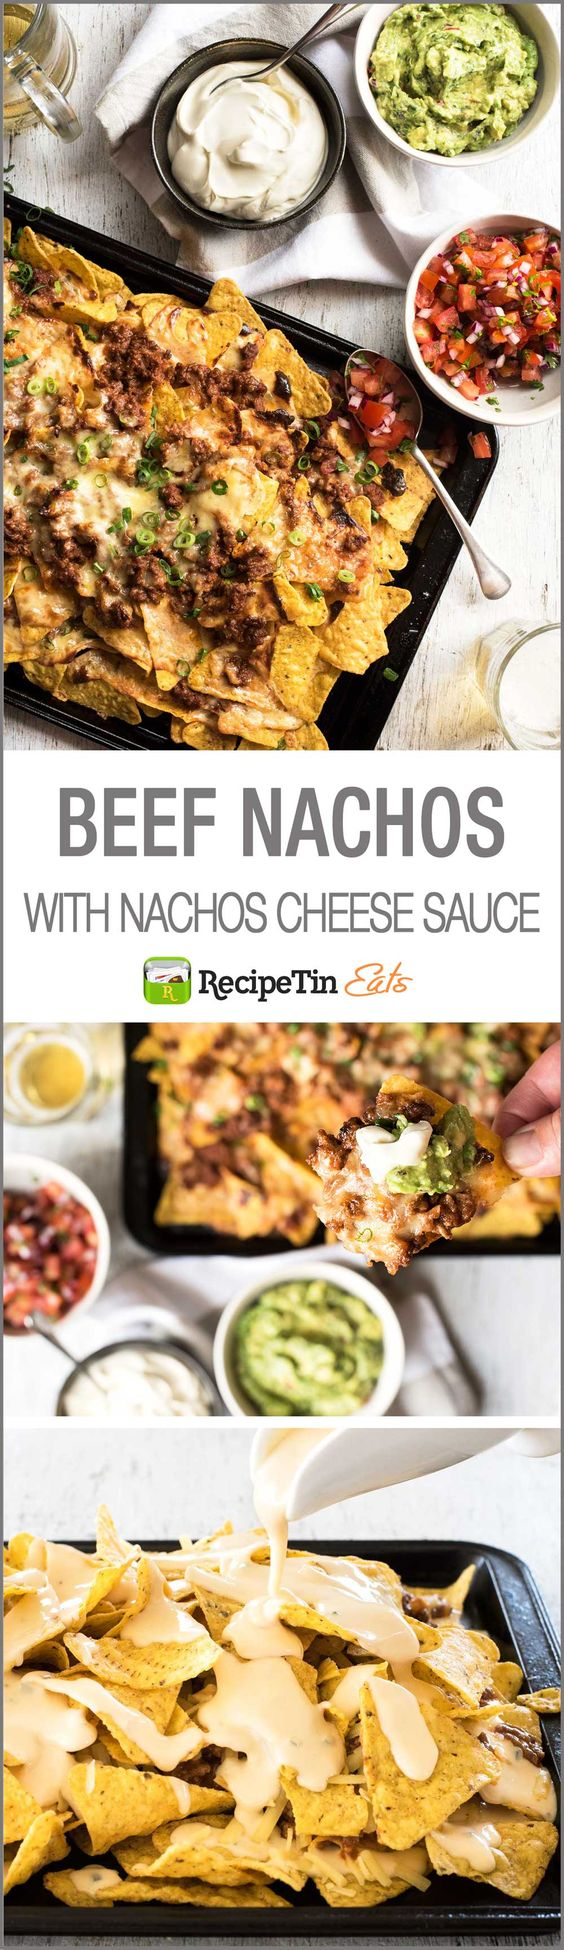 ... the ultimate nachos is a 5 ingredient, 5 minute nachos cheese sauce